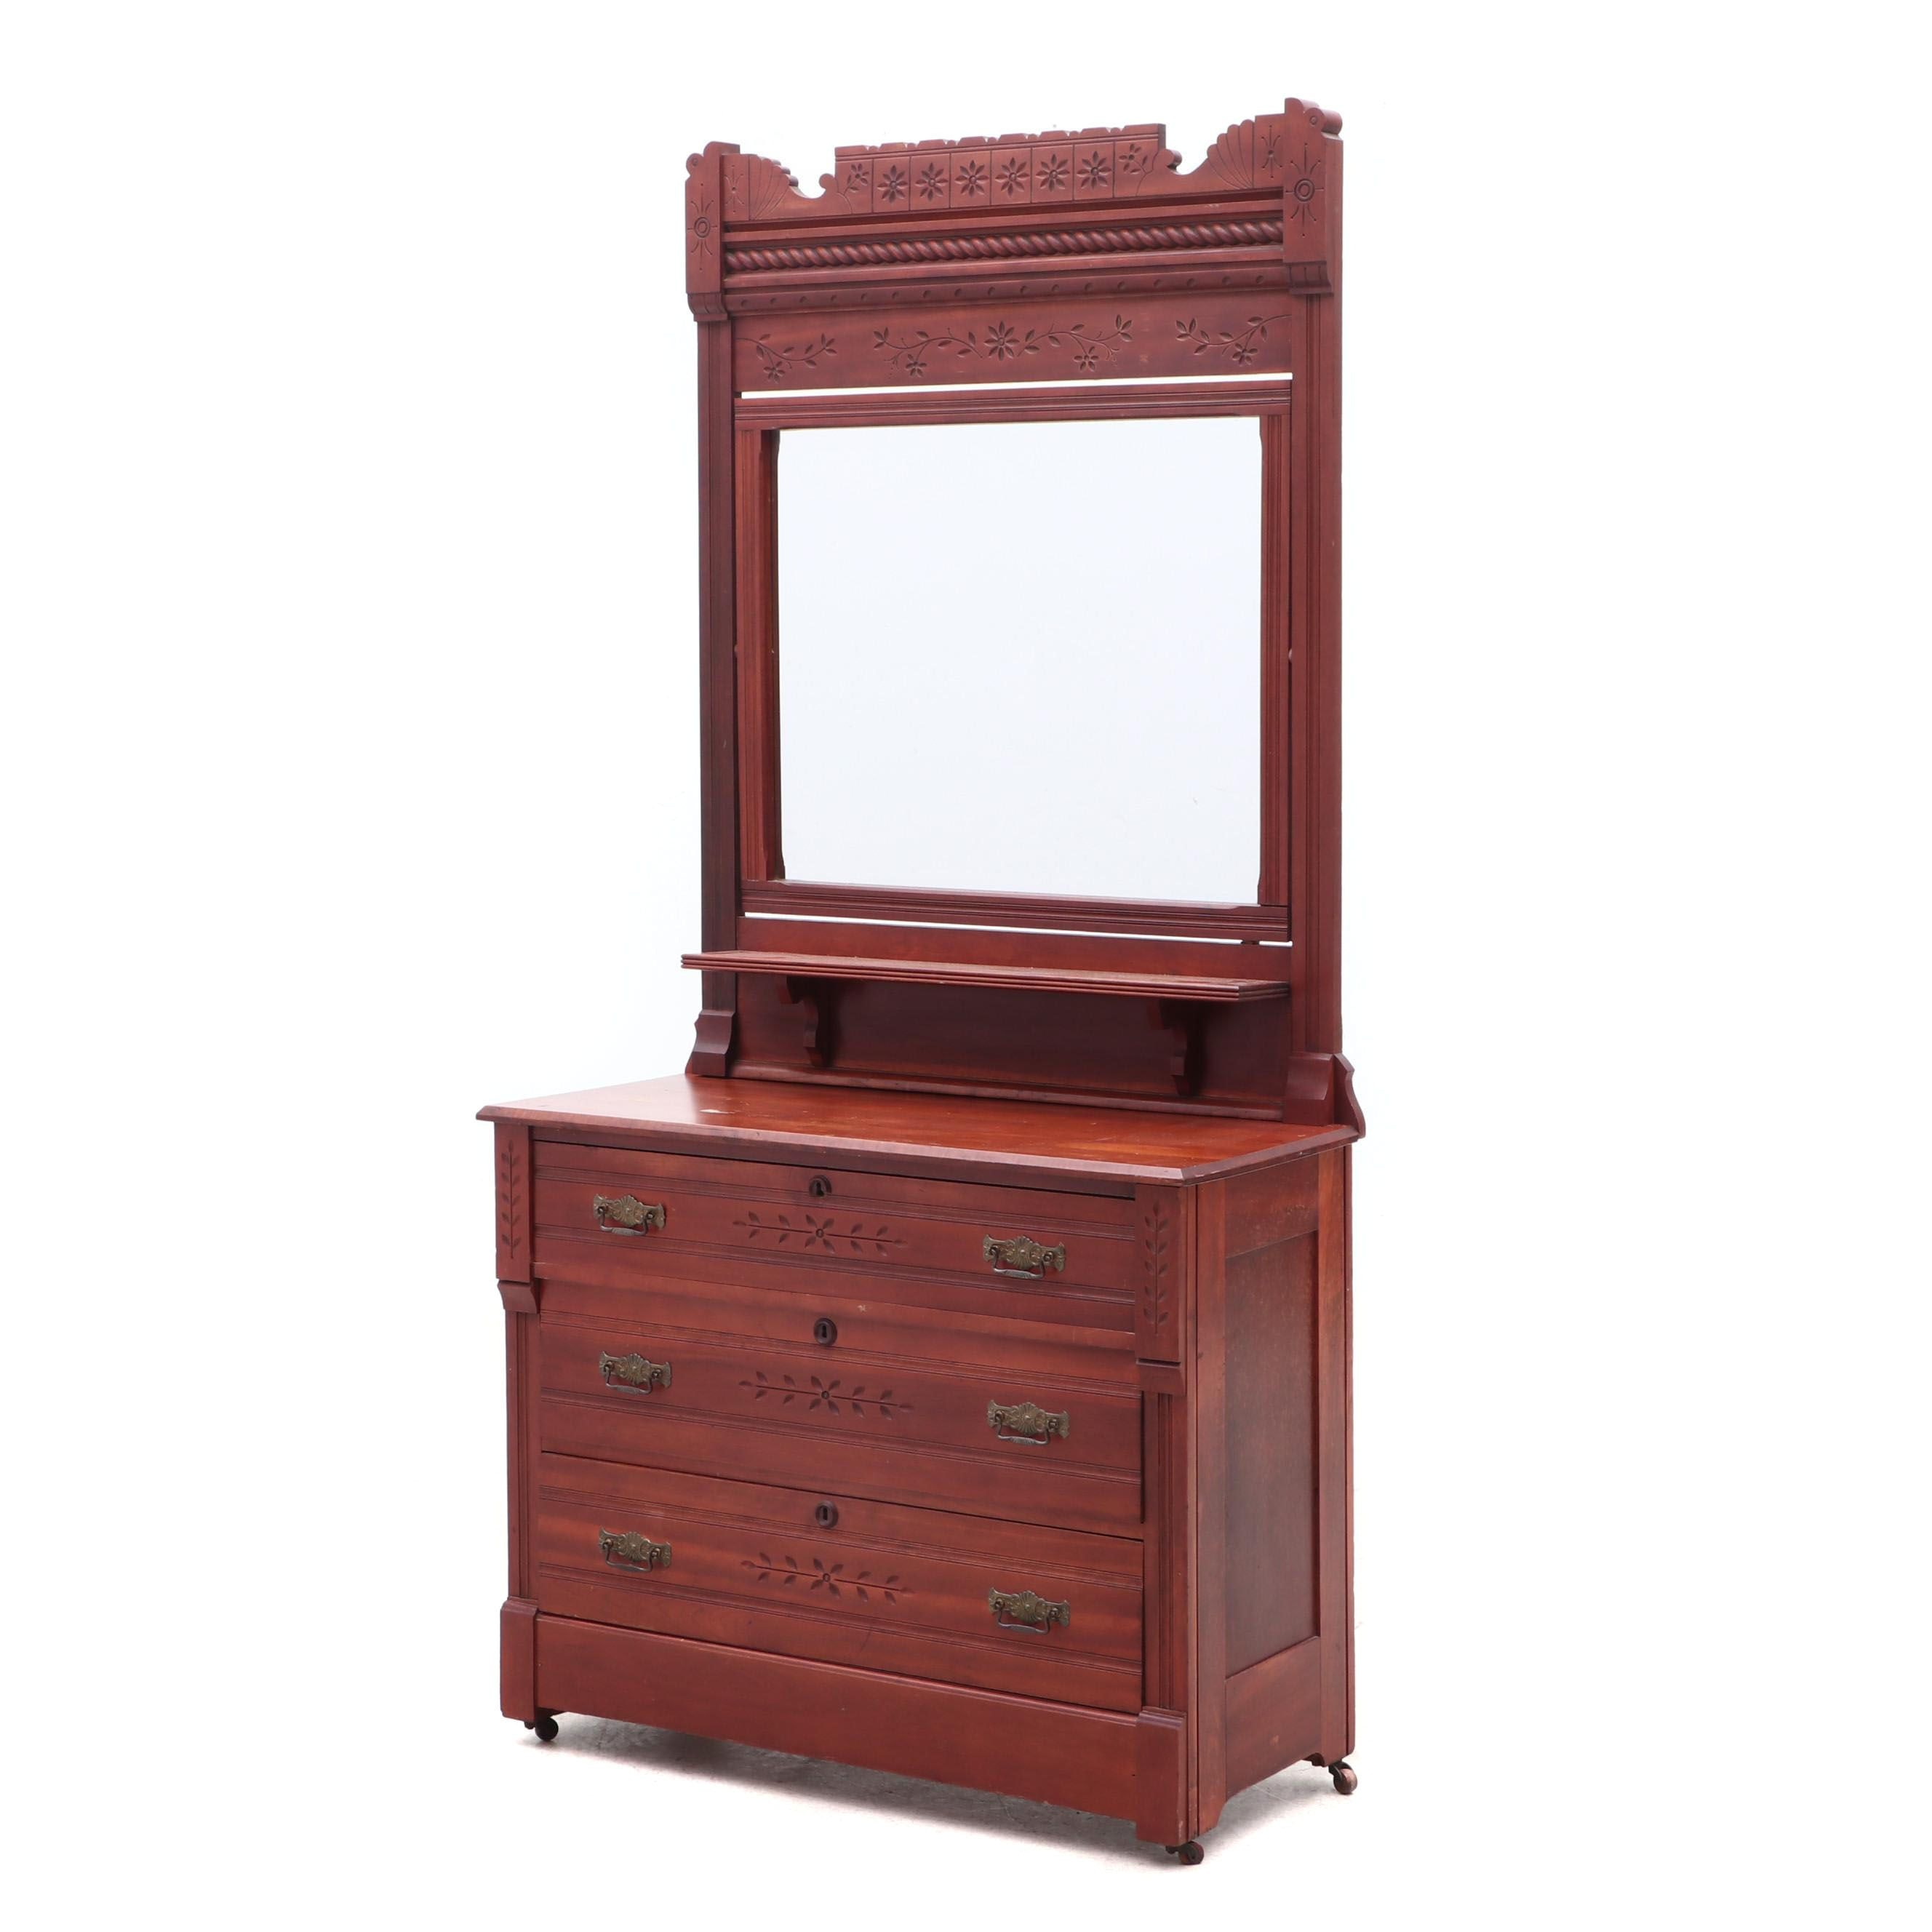 Antique Eastlake Chest of Drawers with Mirror